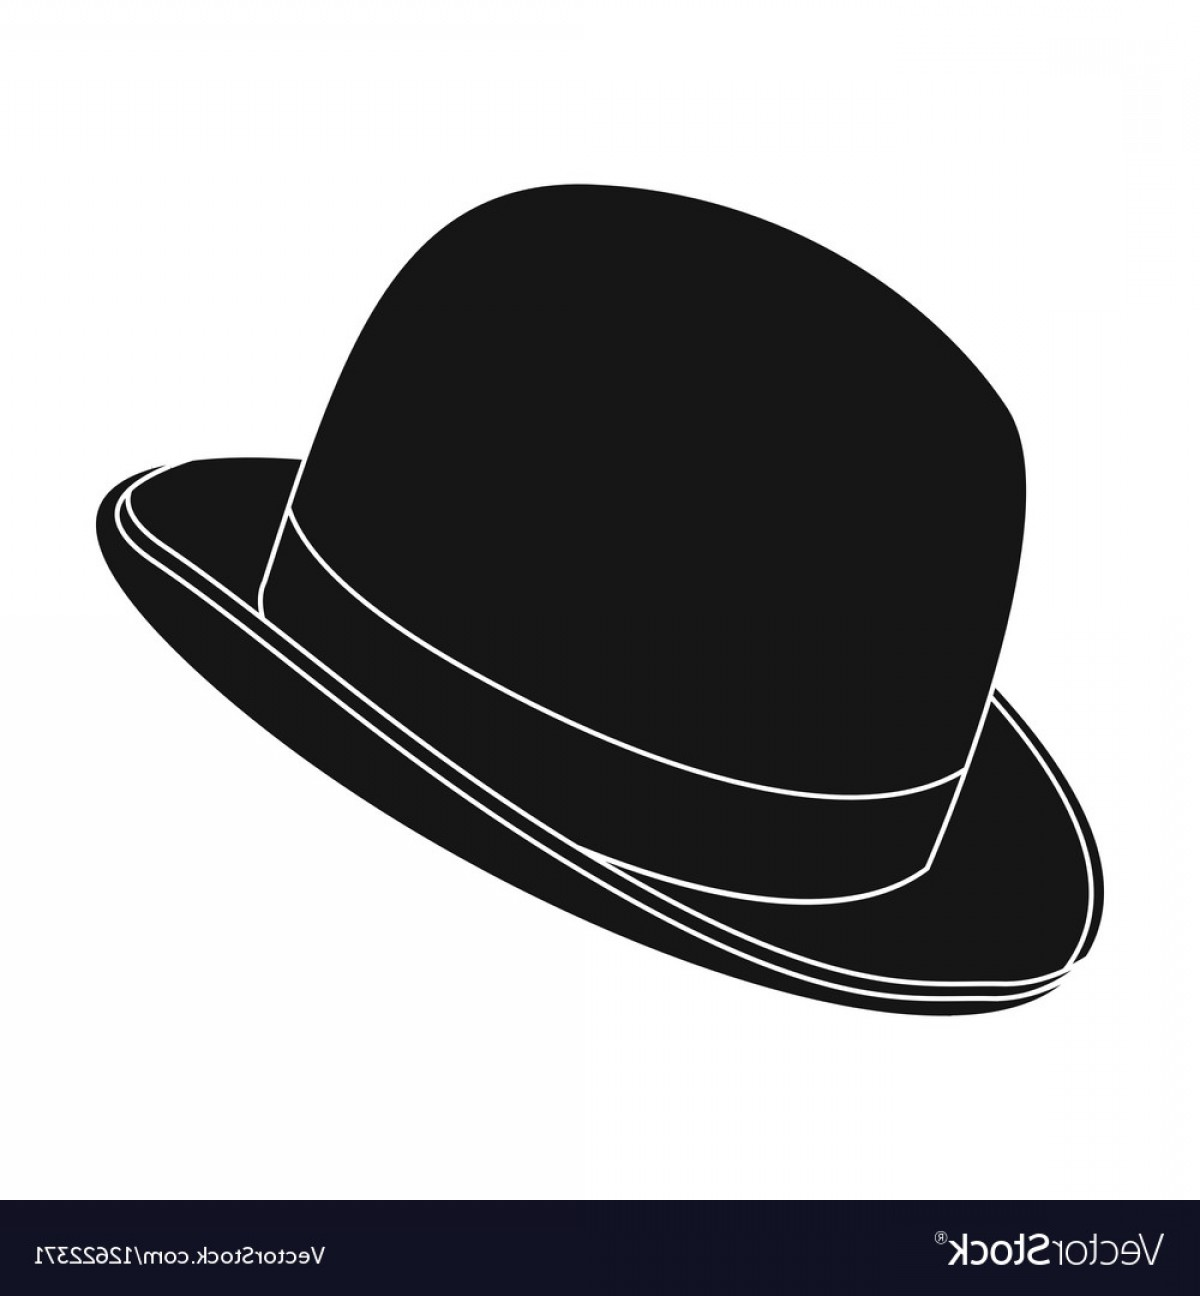 Bowler Hat Vector: Bowler Hat Icon In Black Style Isolated On White Vector